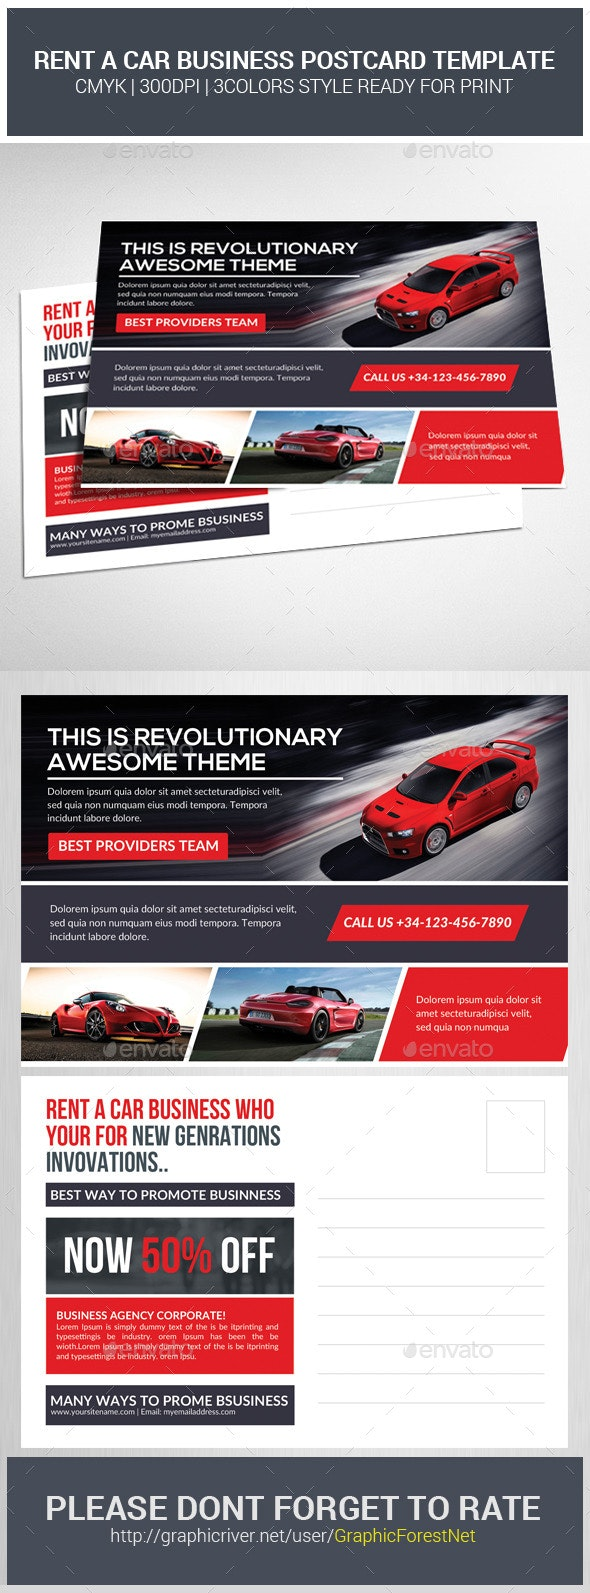 Rent A Car Business Postcard Template - Cards & Invites Print Templates